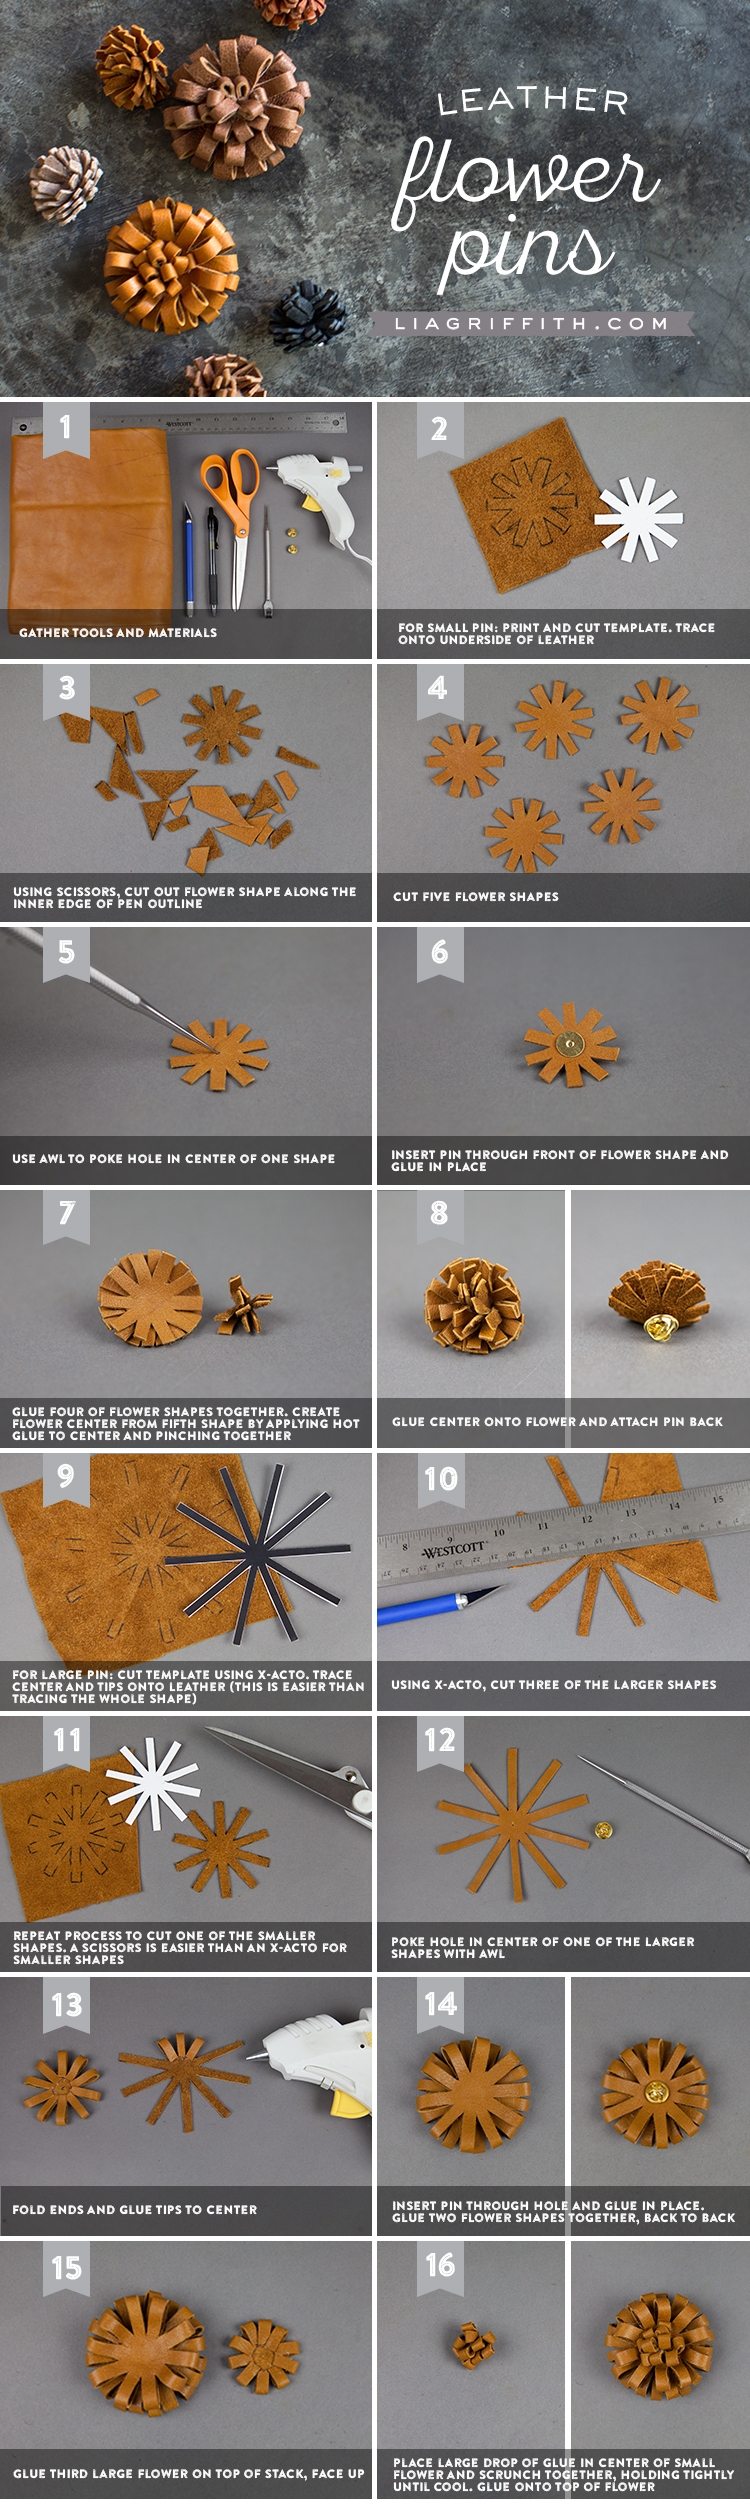 How to Make a Leather Flower Pin